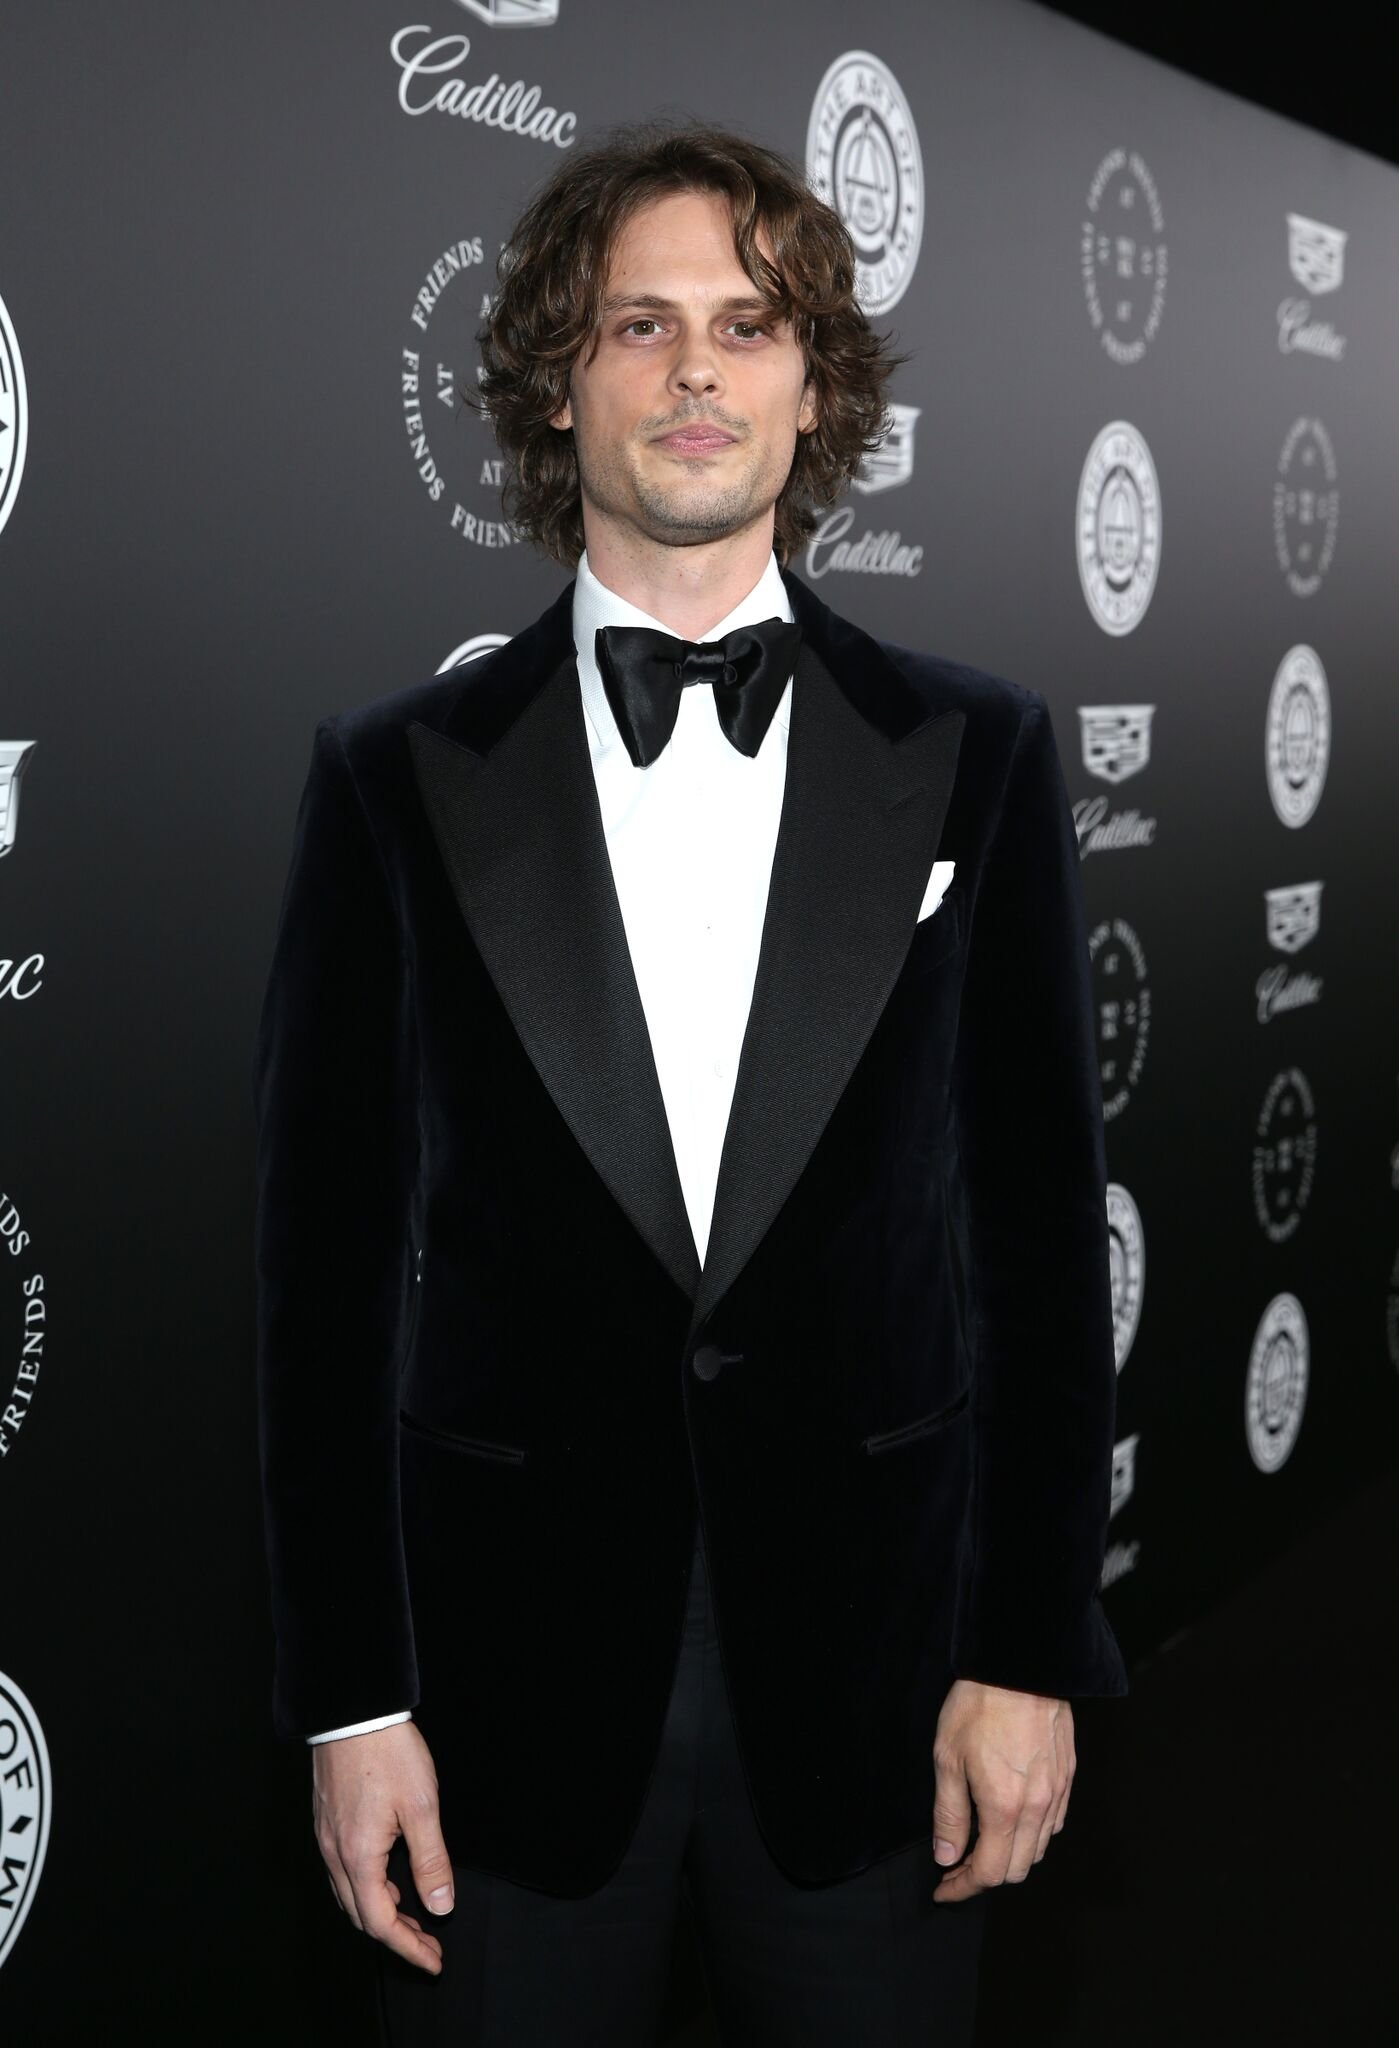 Matthew Gray Gubler attends The Art Of Elysium's 11th Annual Celebration | Source: Getty Images